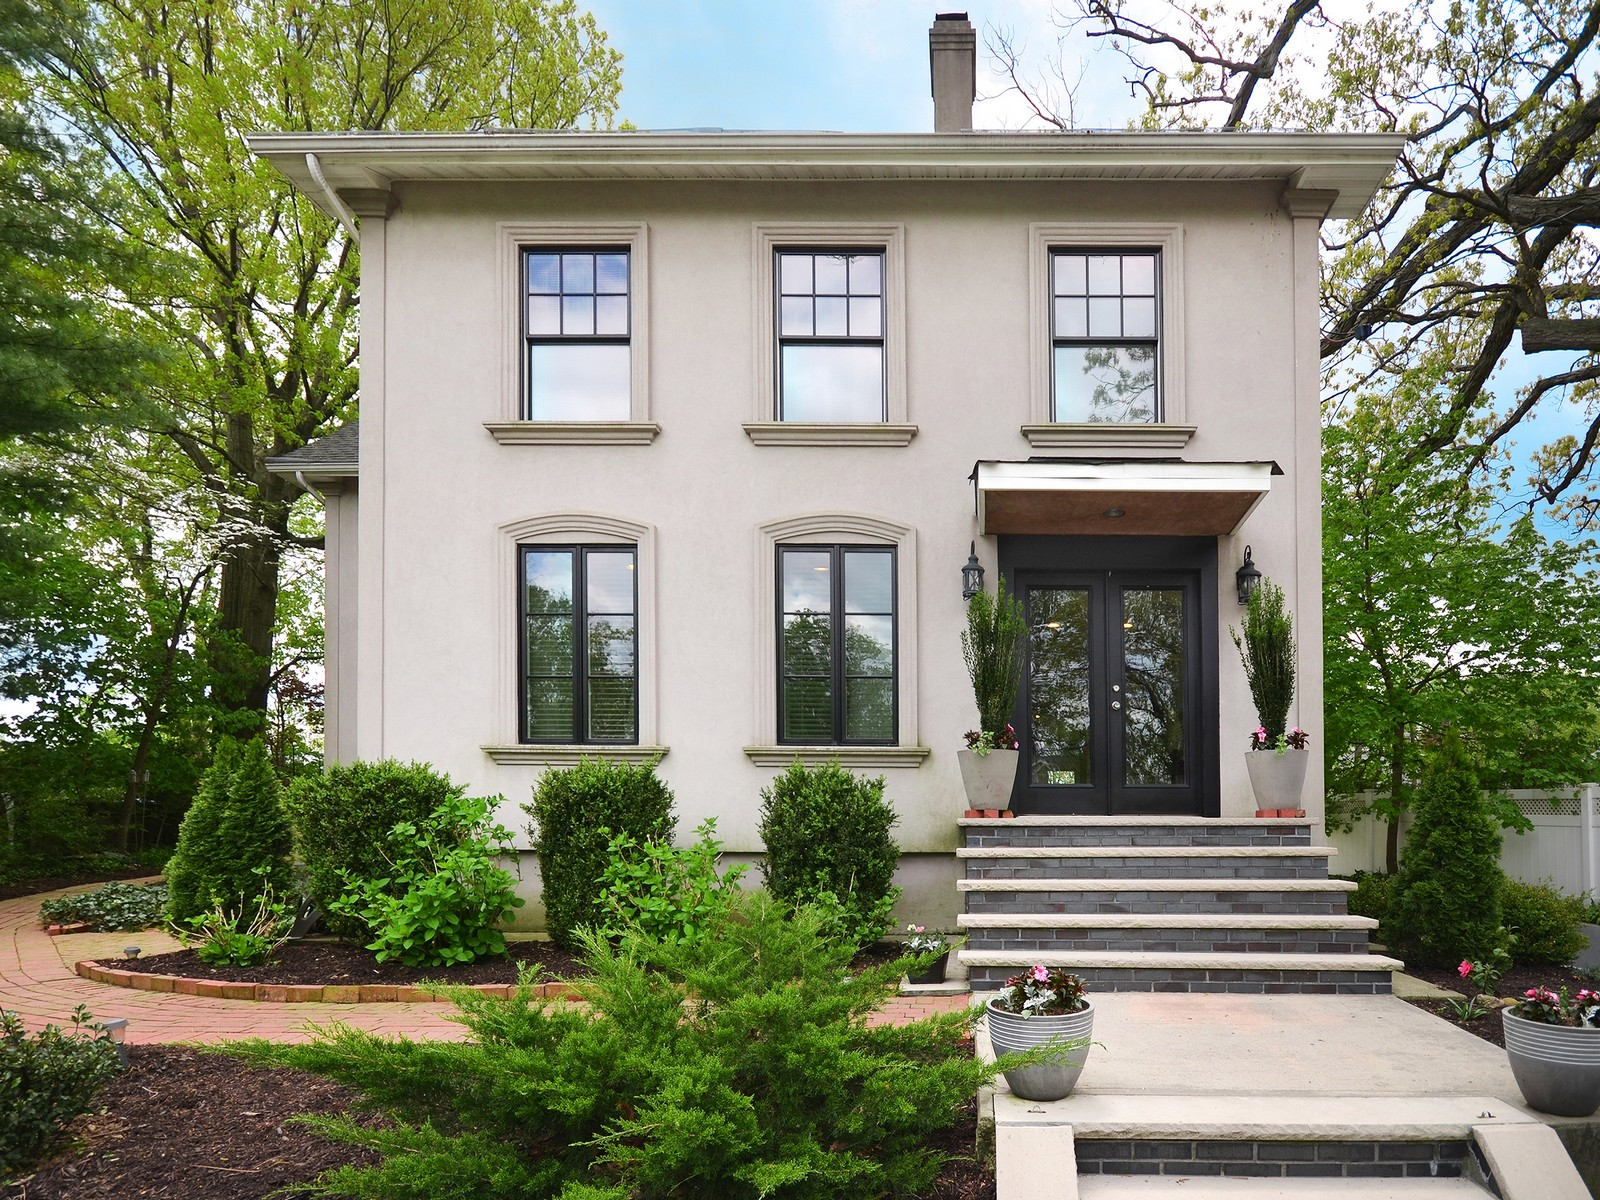 Single Family Home for Sale at Colonial 22 Locust Ave Port Washington, New York, 11050 United States